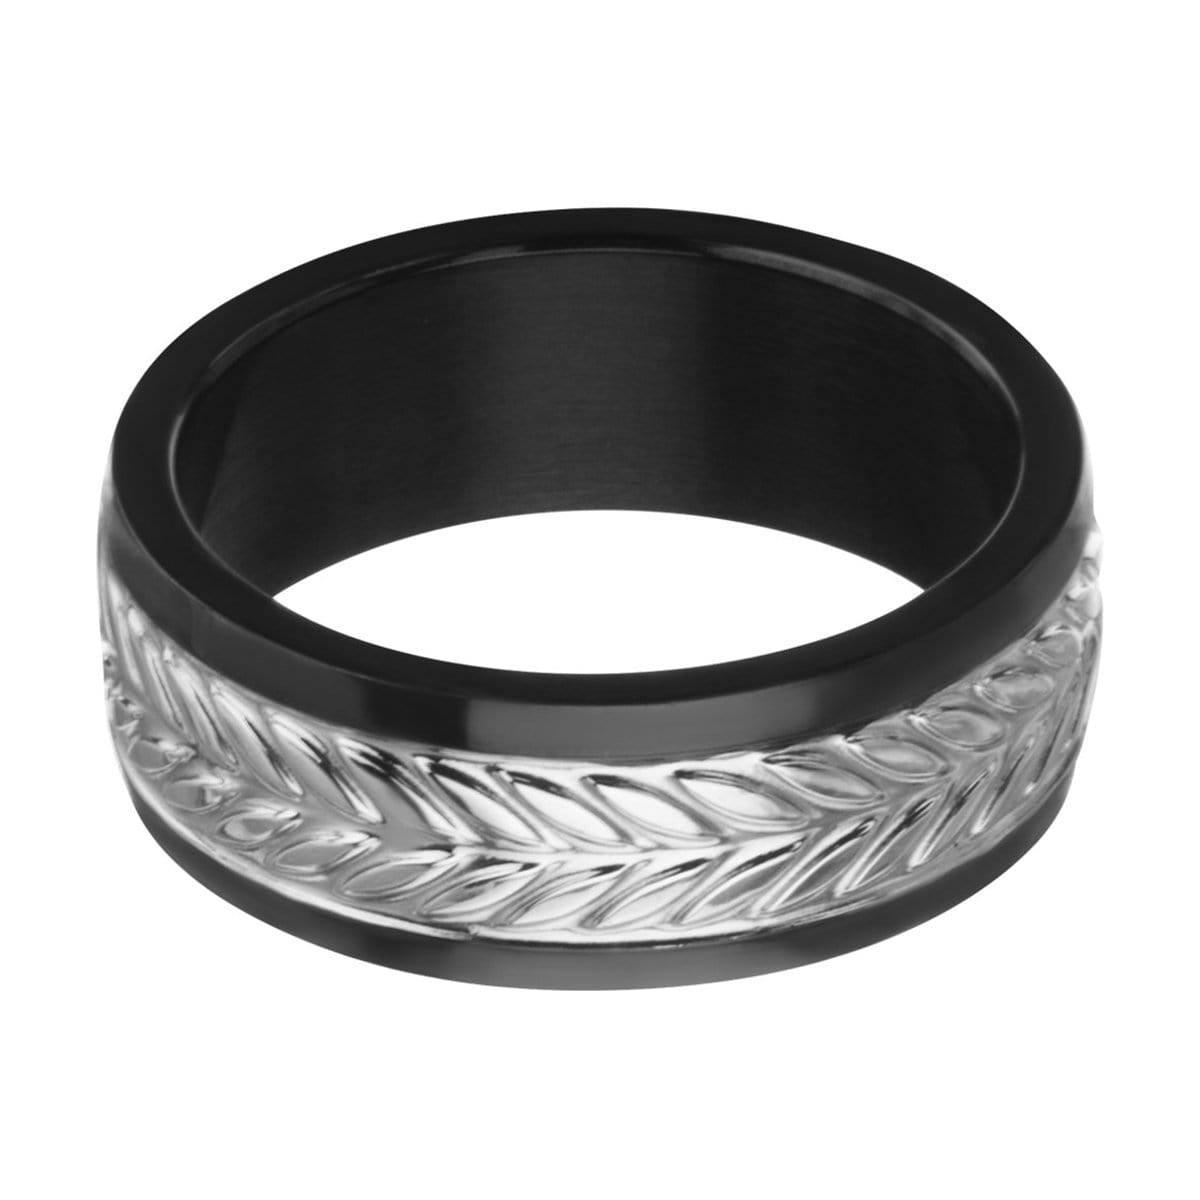 Black & Silver Stainless Steel Leaf Patterned Band Rings